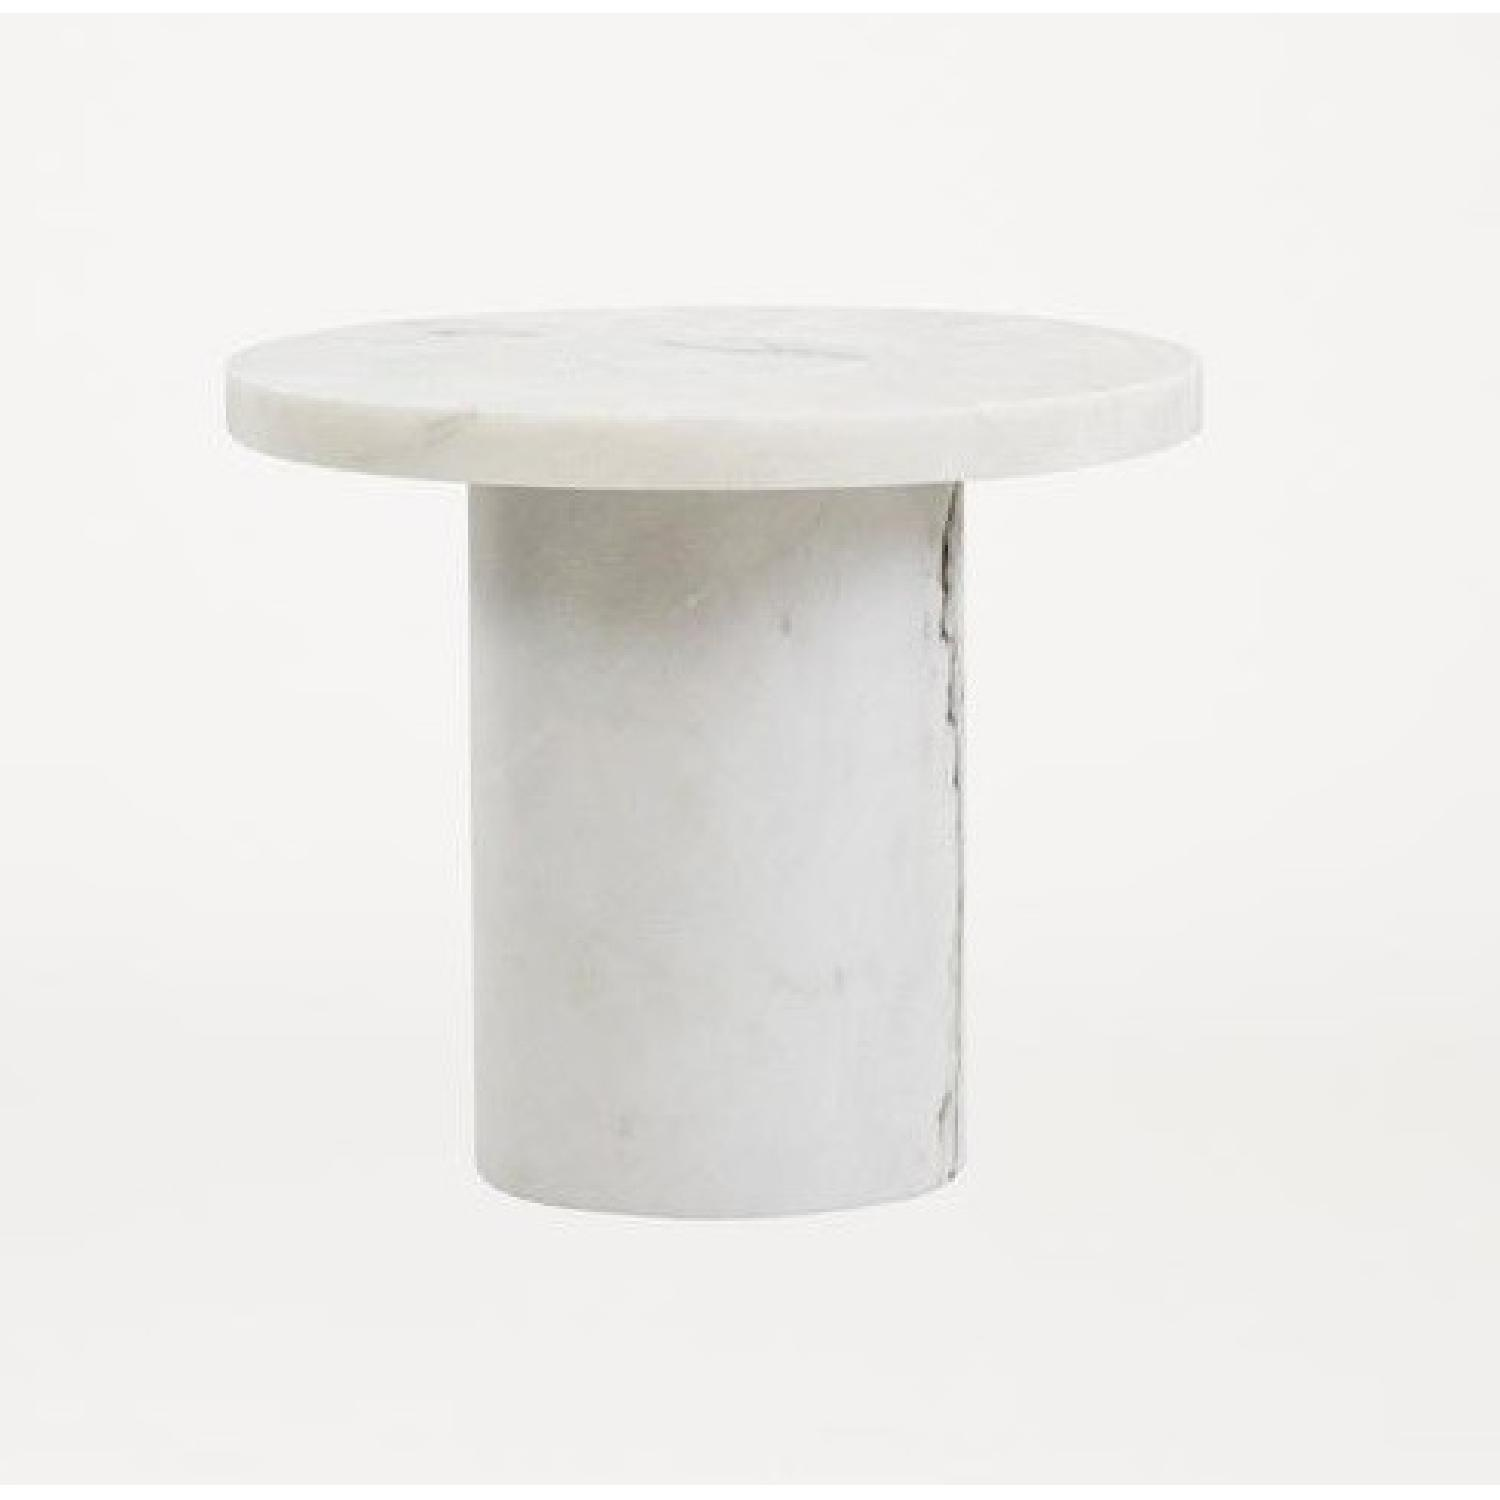 Frama Sintra Marble Edition in Whites - image-4